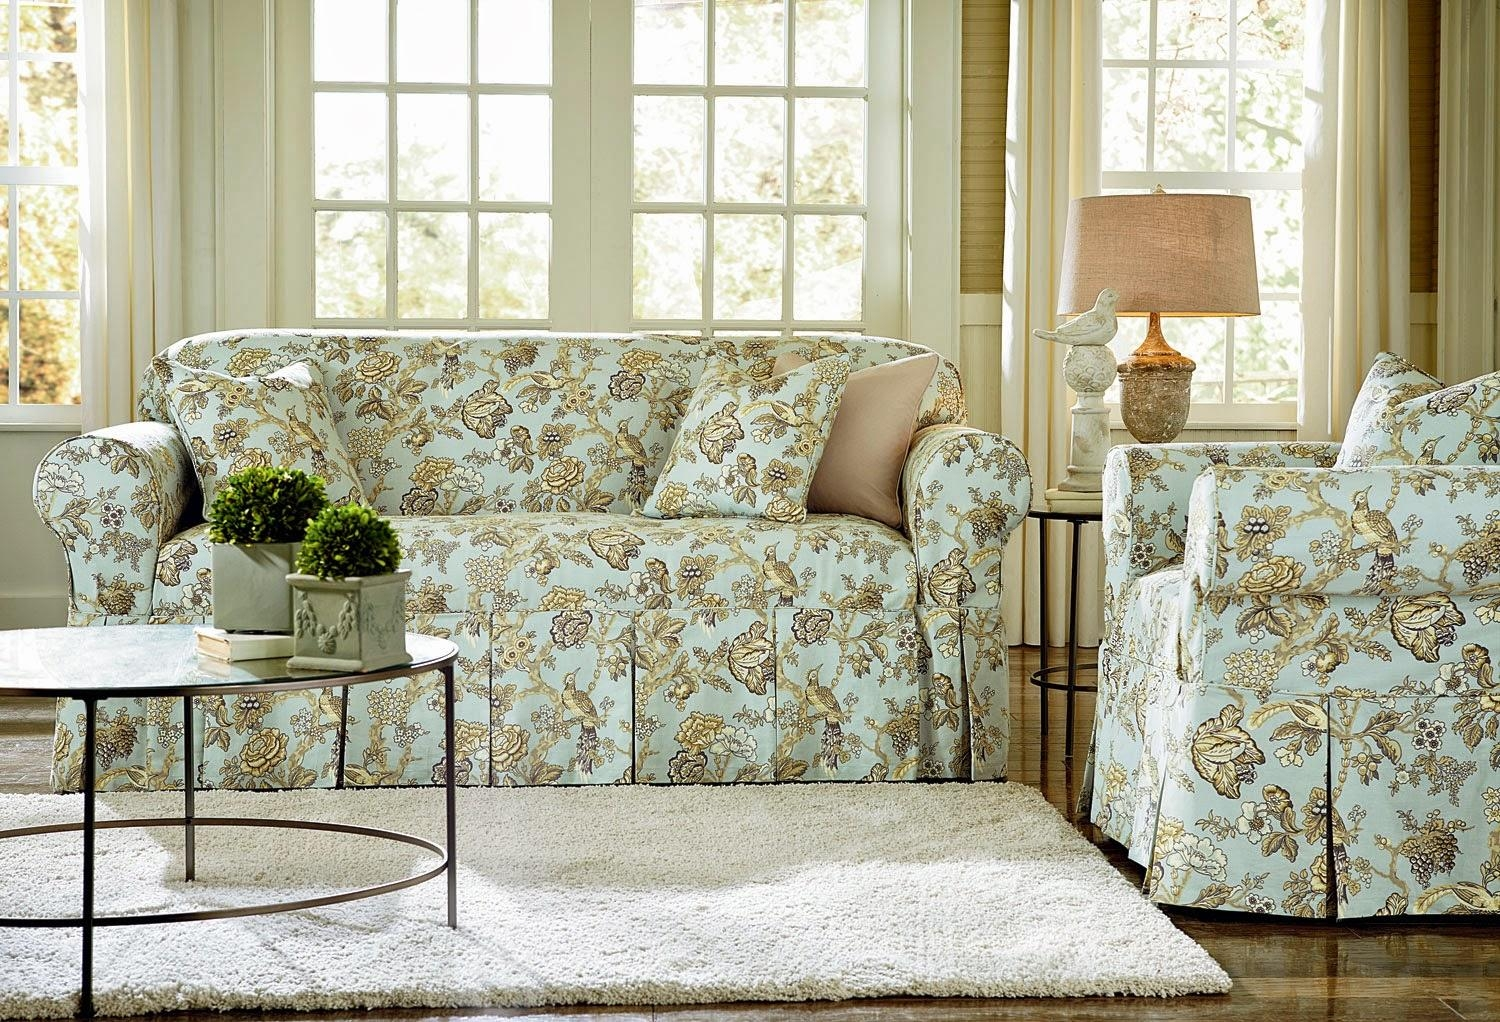 Sure Fit Slipcovers Blog In Floral Sofa Slipcovers (View 9 of 20)